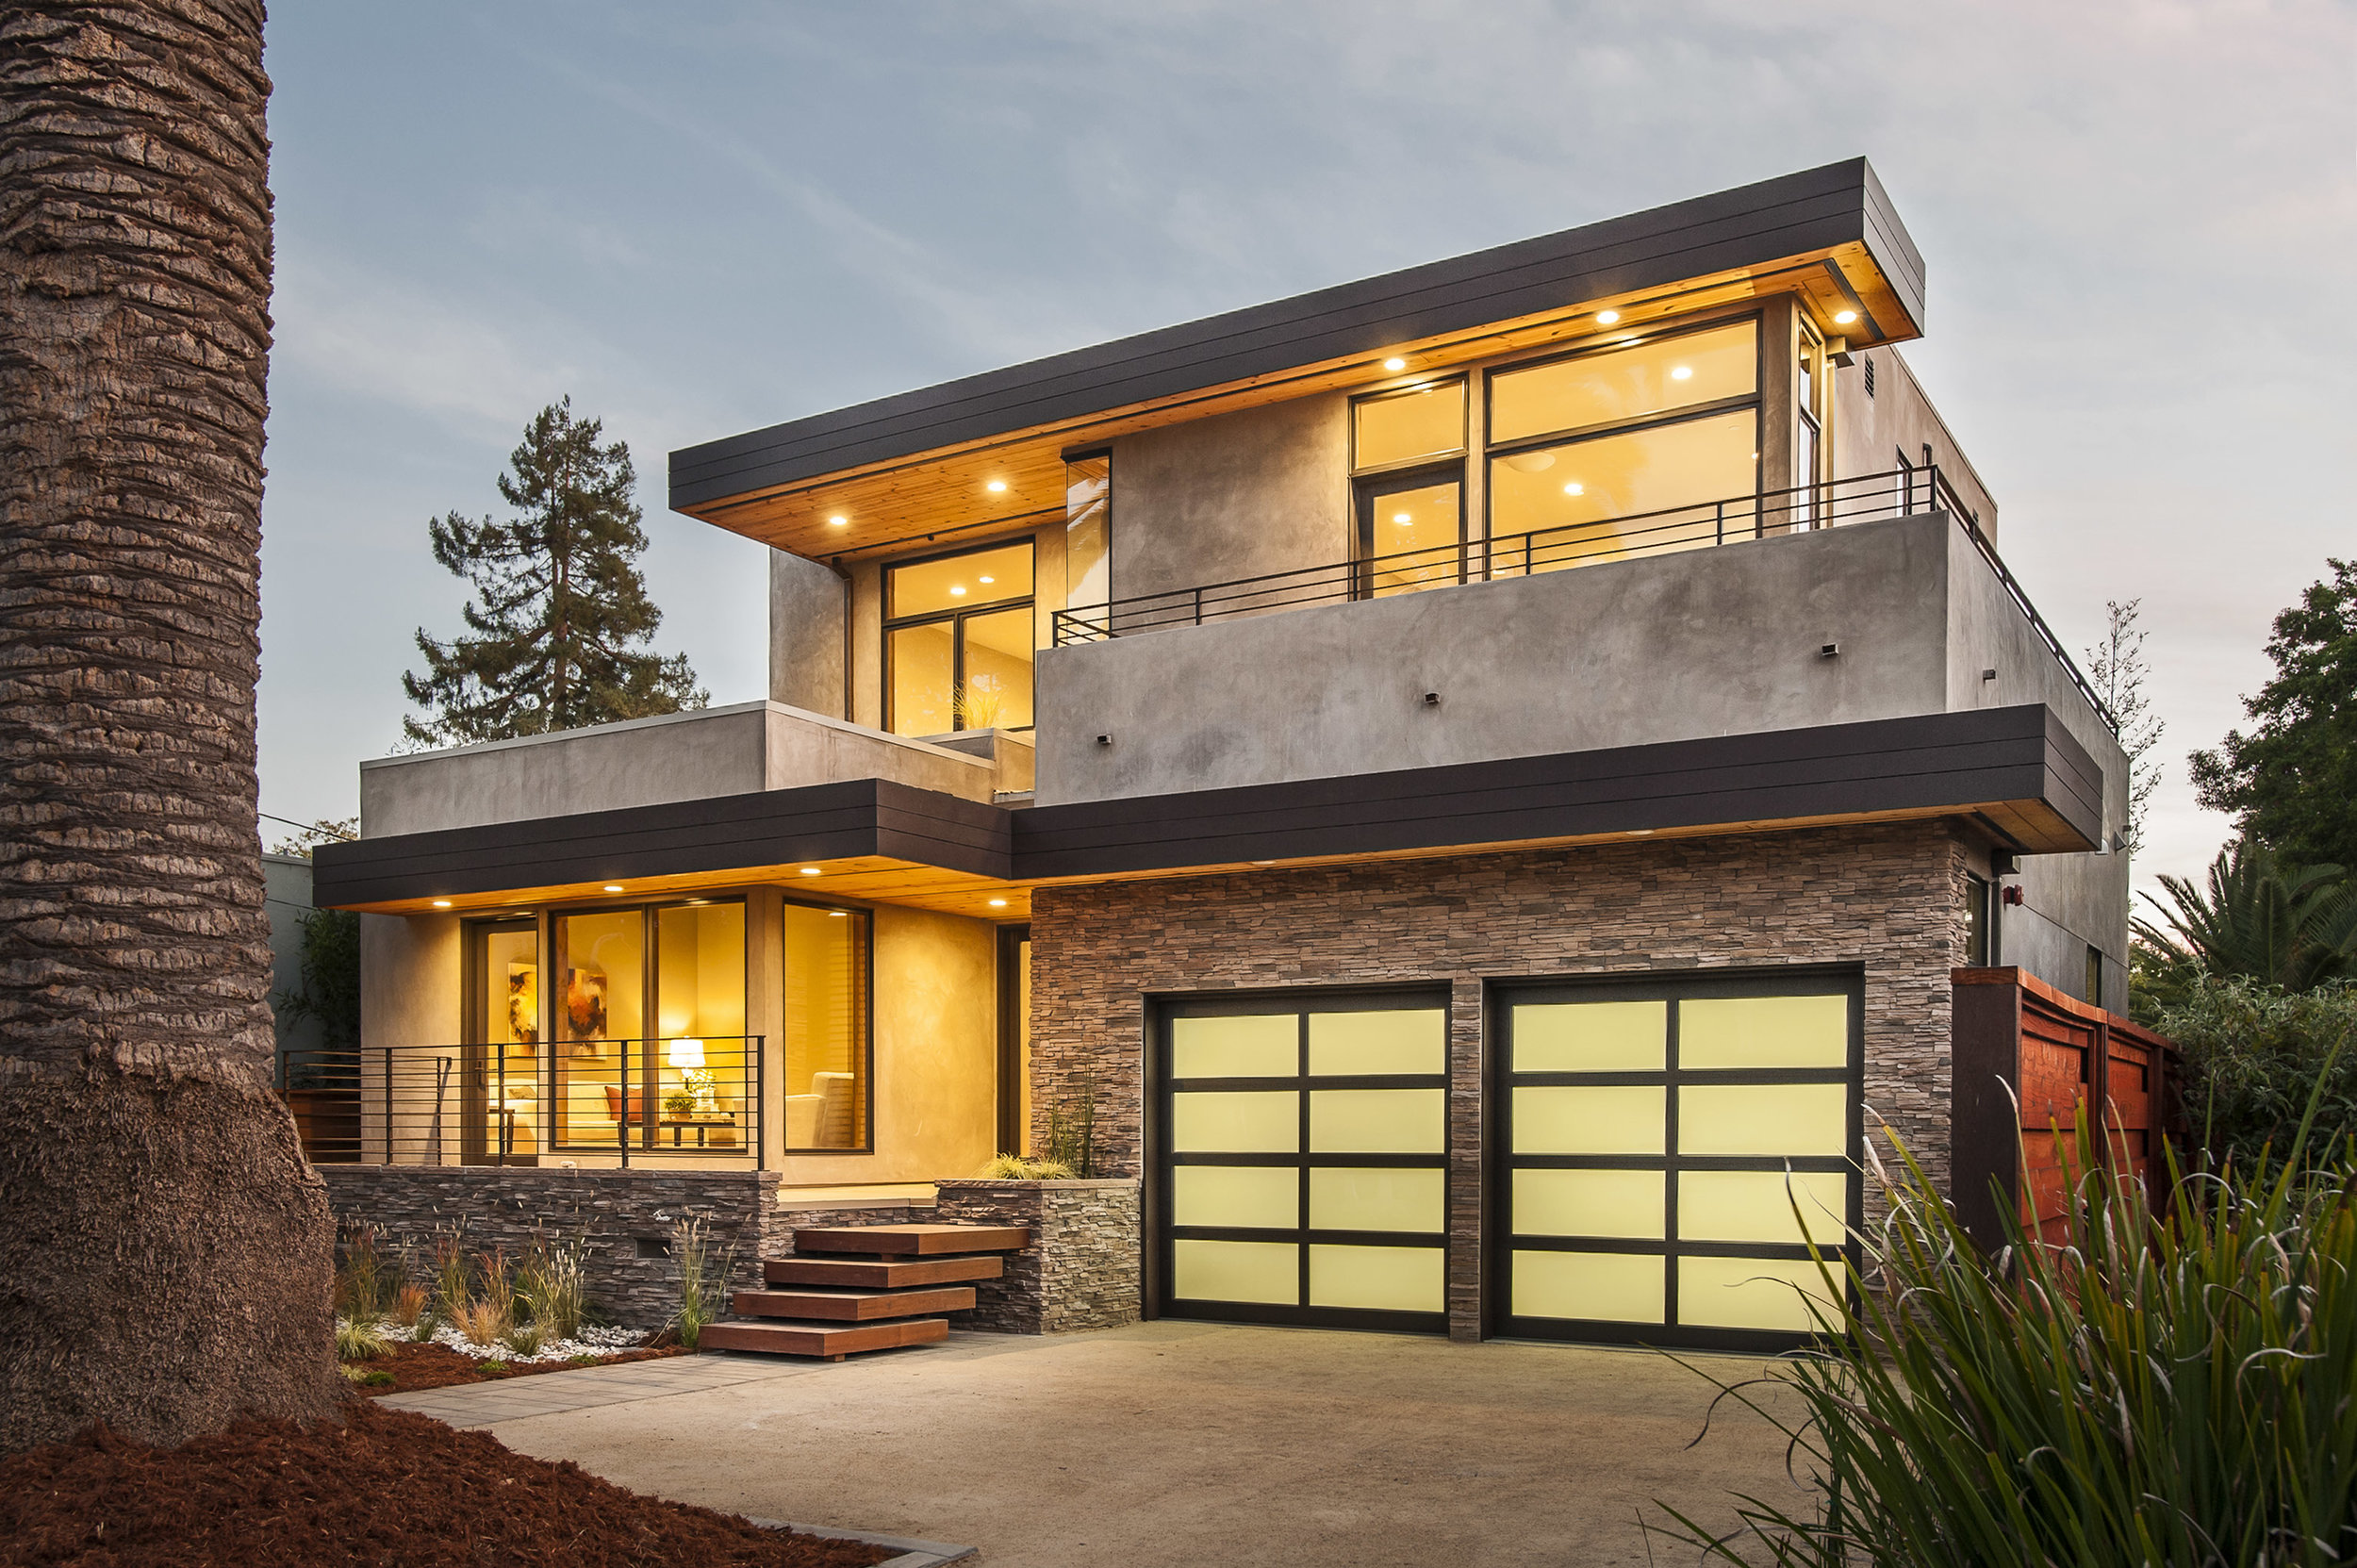 ch x tld Contemporary Townhouse Designs on contemporary retail building design, contemporary apartment design, contemporary villa design, modern loft design, contemporary farm design, contemporary cabin design, contemporary commercial design, contemporary garden design, contemporary a frame design, contemporary warehouse design, new york loft bedroom design, contemporary ranch design, contemporary cottage design, contemporary condo design, contemporary traditional design, contemporary architectural design, french apartment exterior design, contemporary loft design, contemporary multi family design, contemporary hotel design,